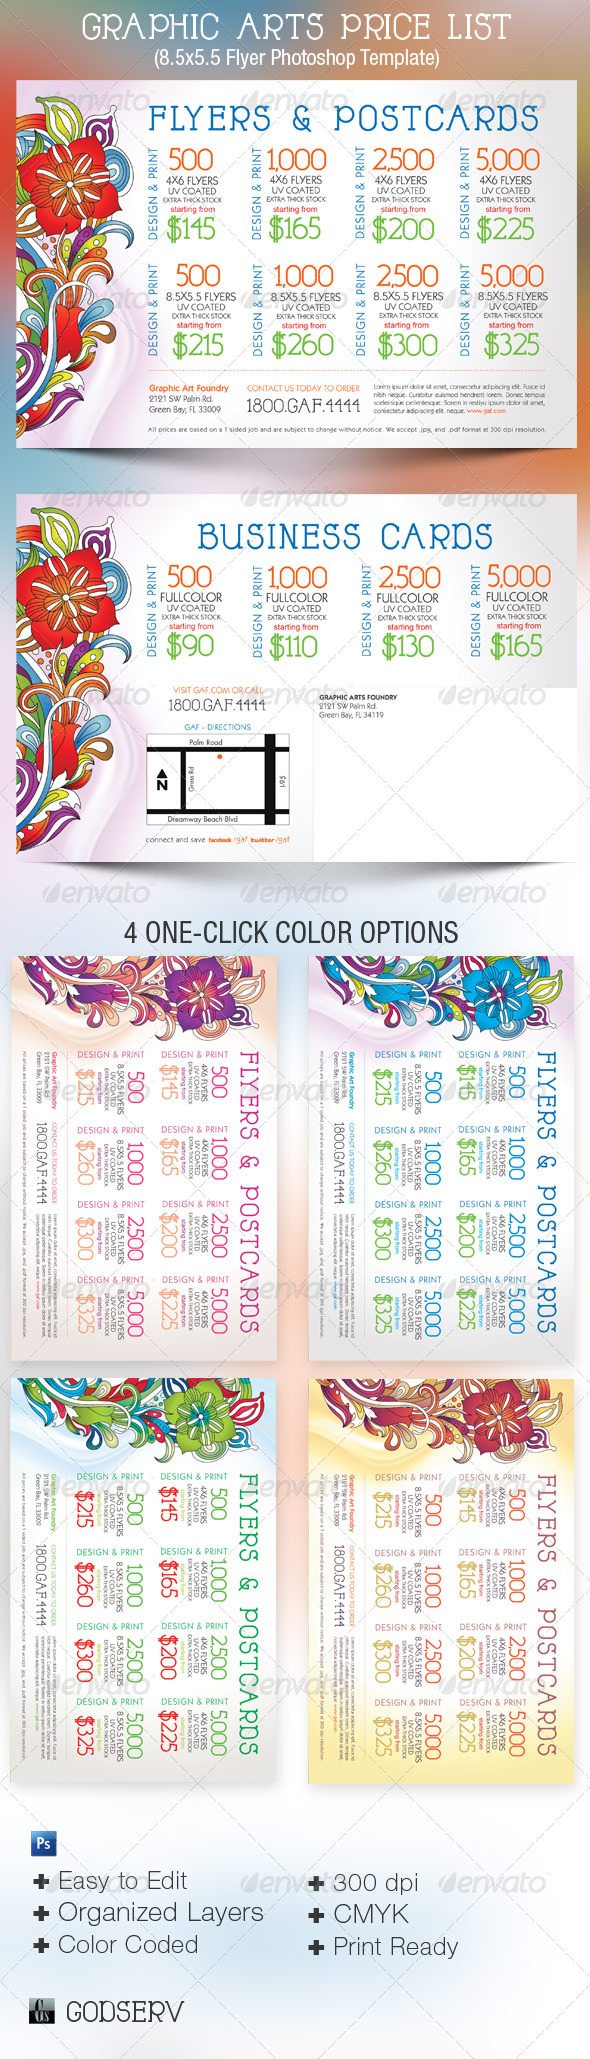 Graphic Arts Price List Flyer Postcard Template - Commerce Flyers